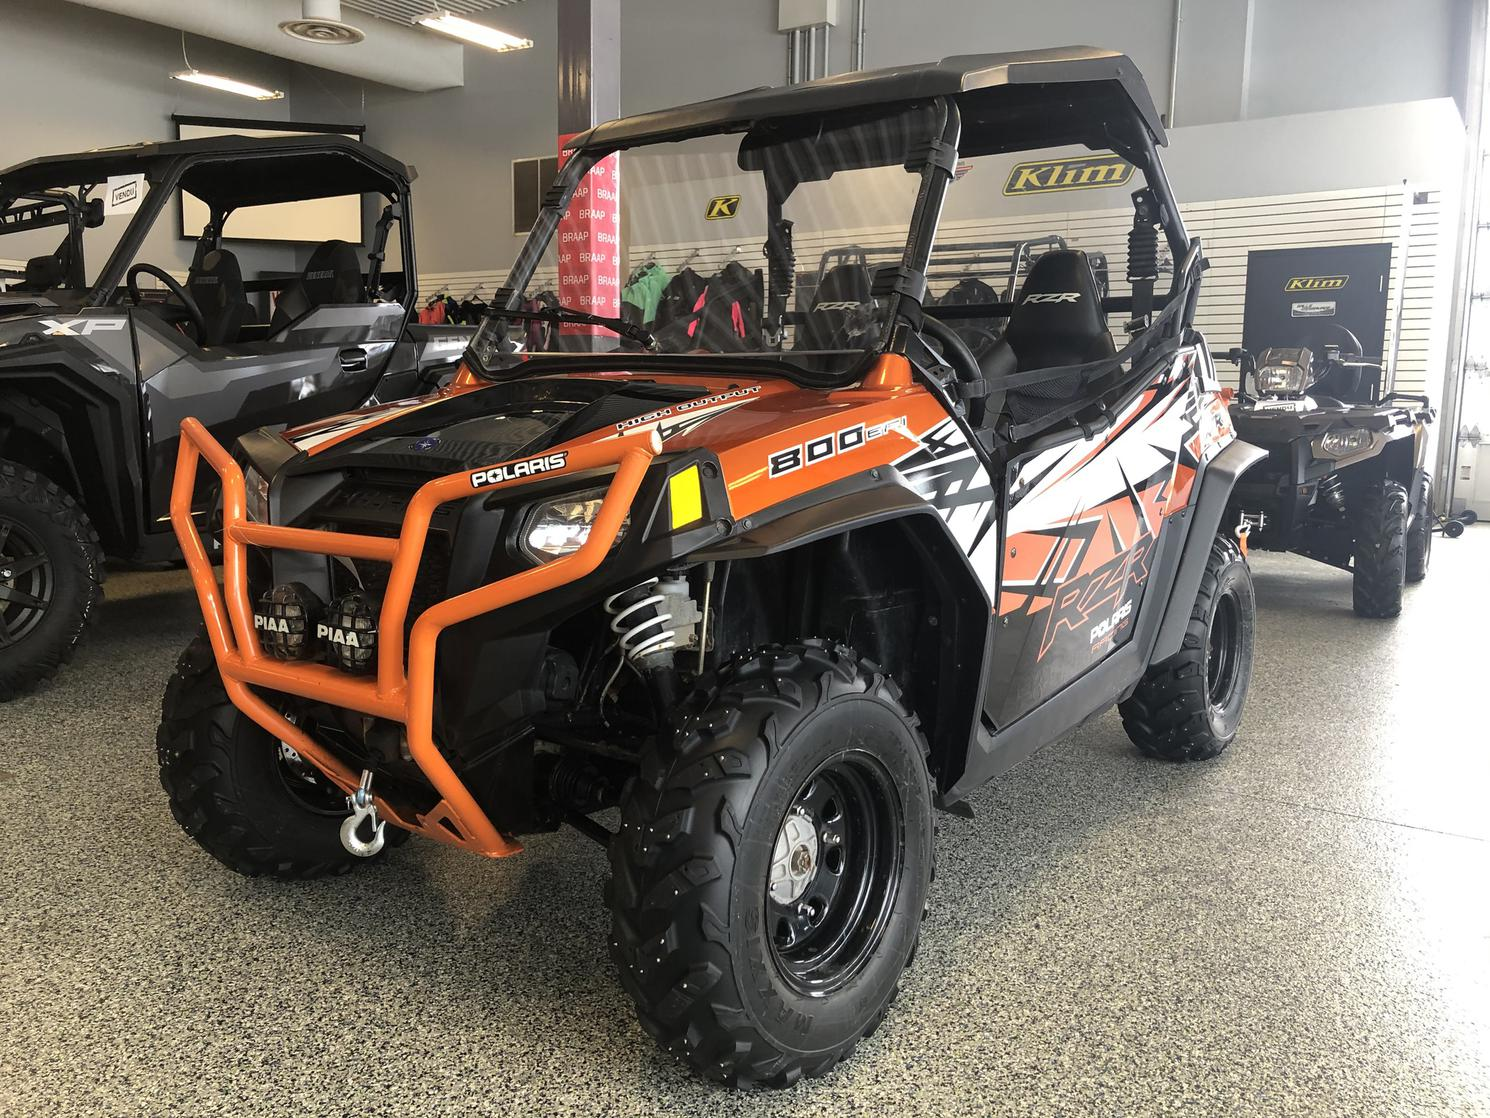 2011 Polaris RANGER RZR 800 EFI garantie 5 ans disponible !!!